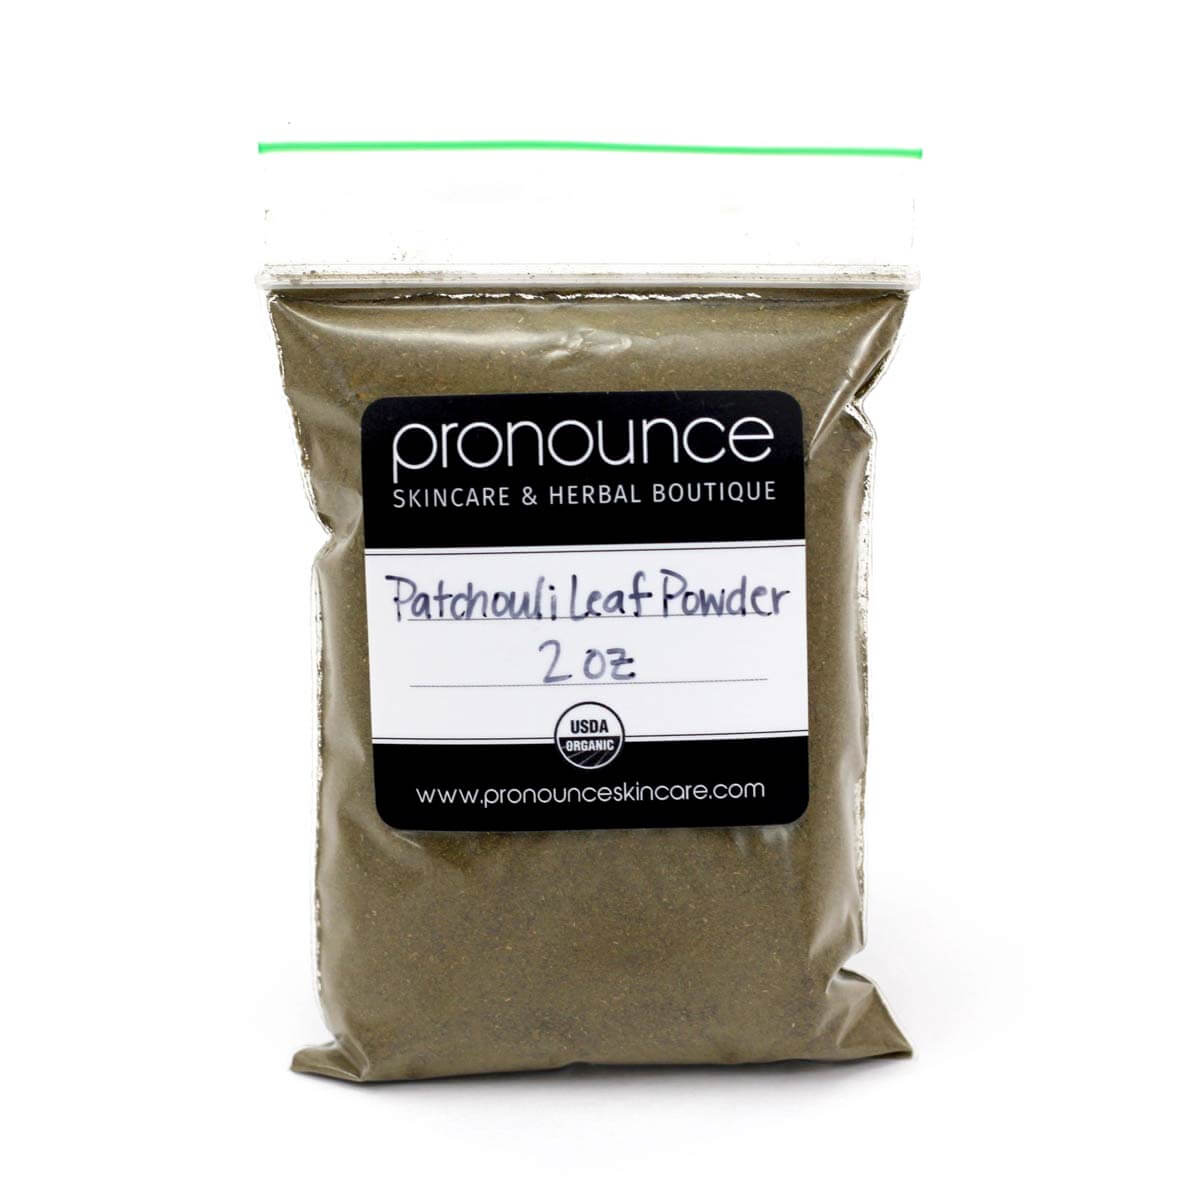 Patchouli-Leaf-Powder-2oz-Pronounce-Skincare-Herbal-Boutique